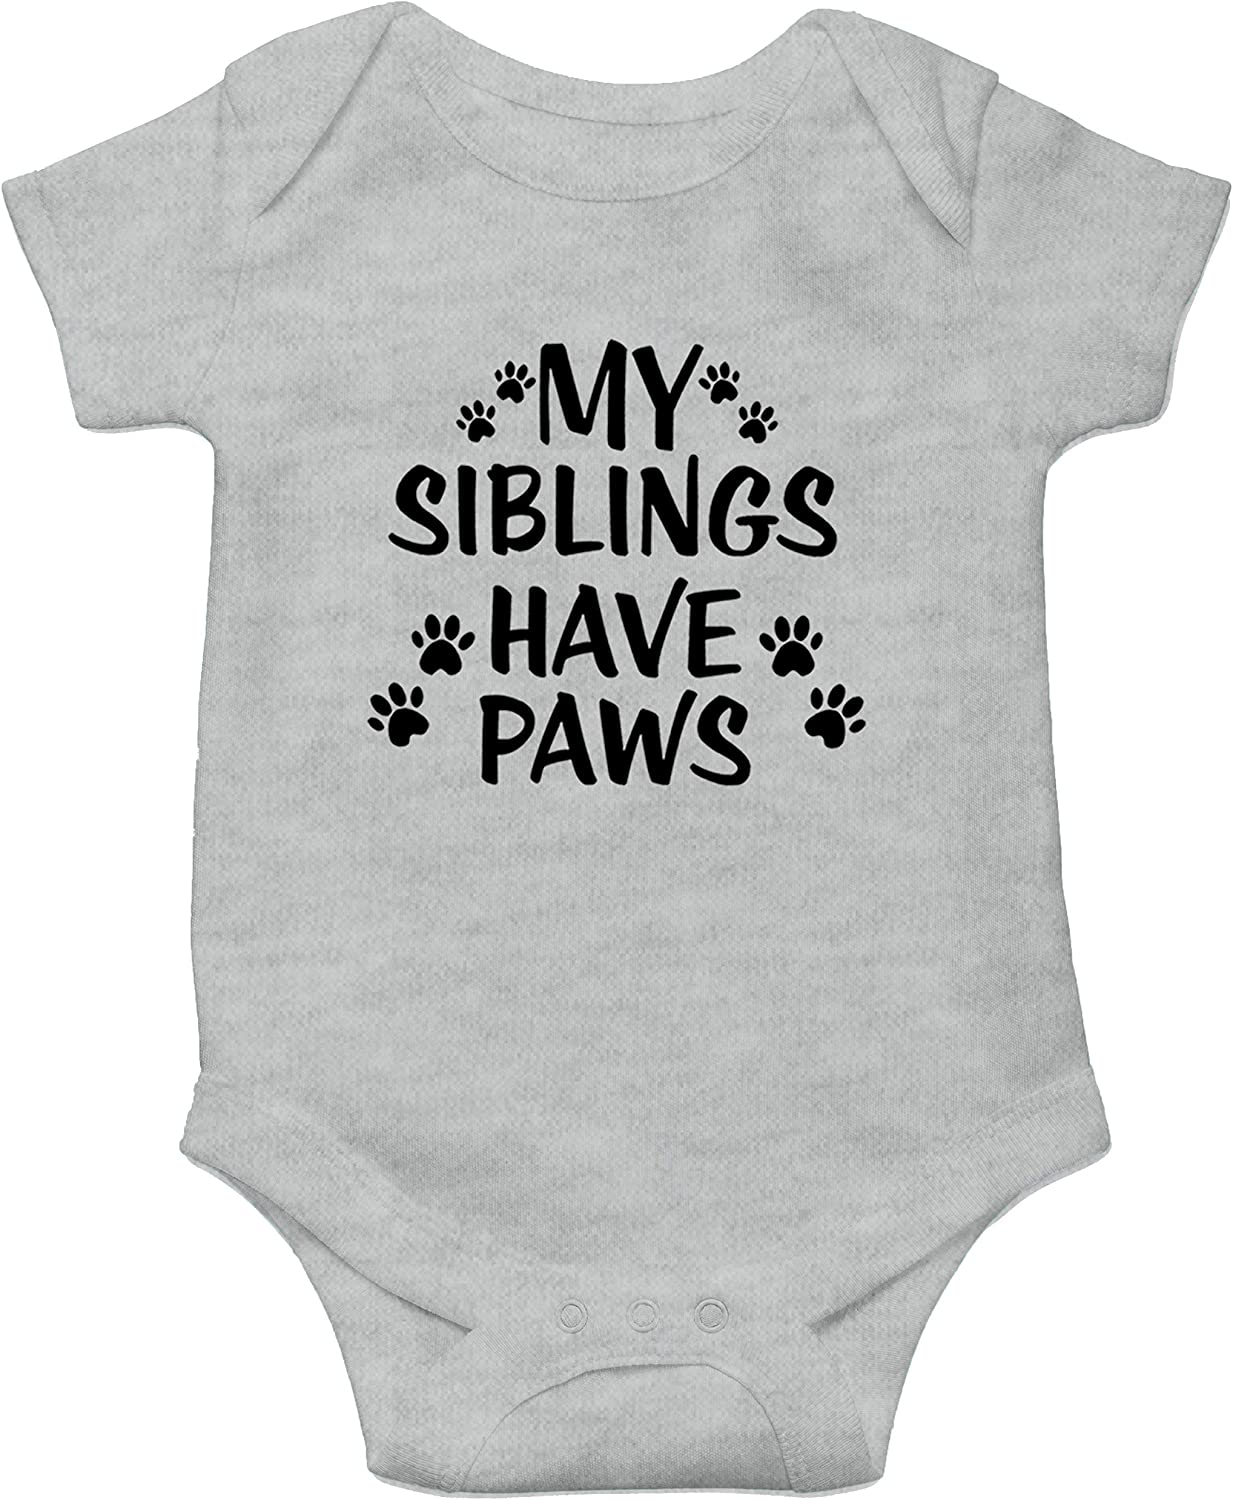 Witty Fashions My Siblings Have Paws Funny Baby Bodysuit